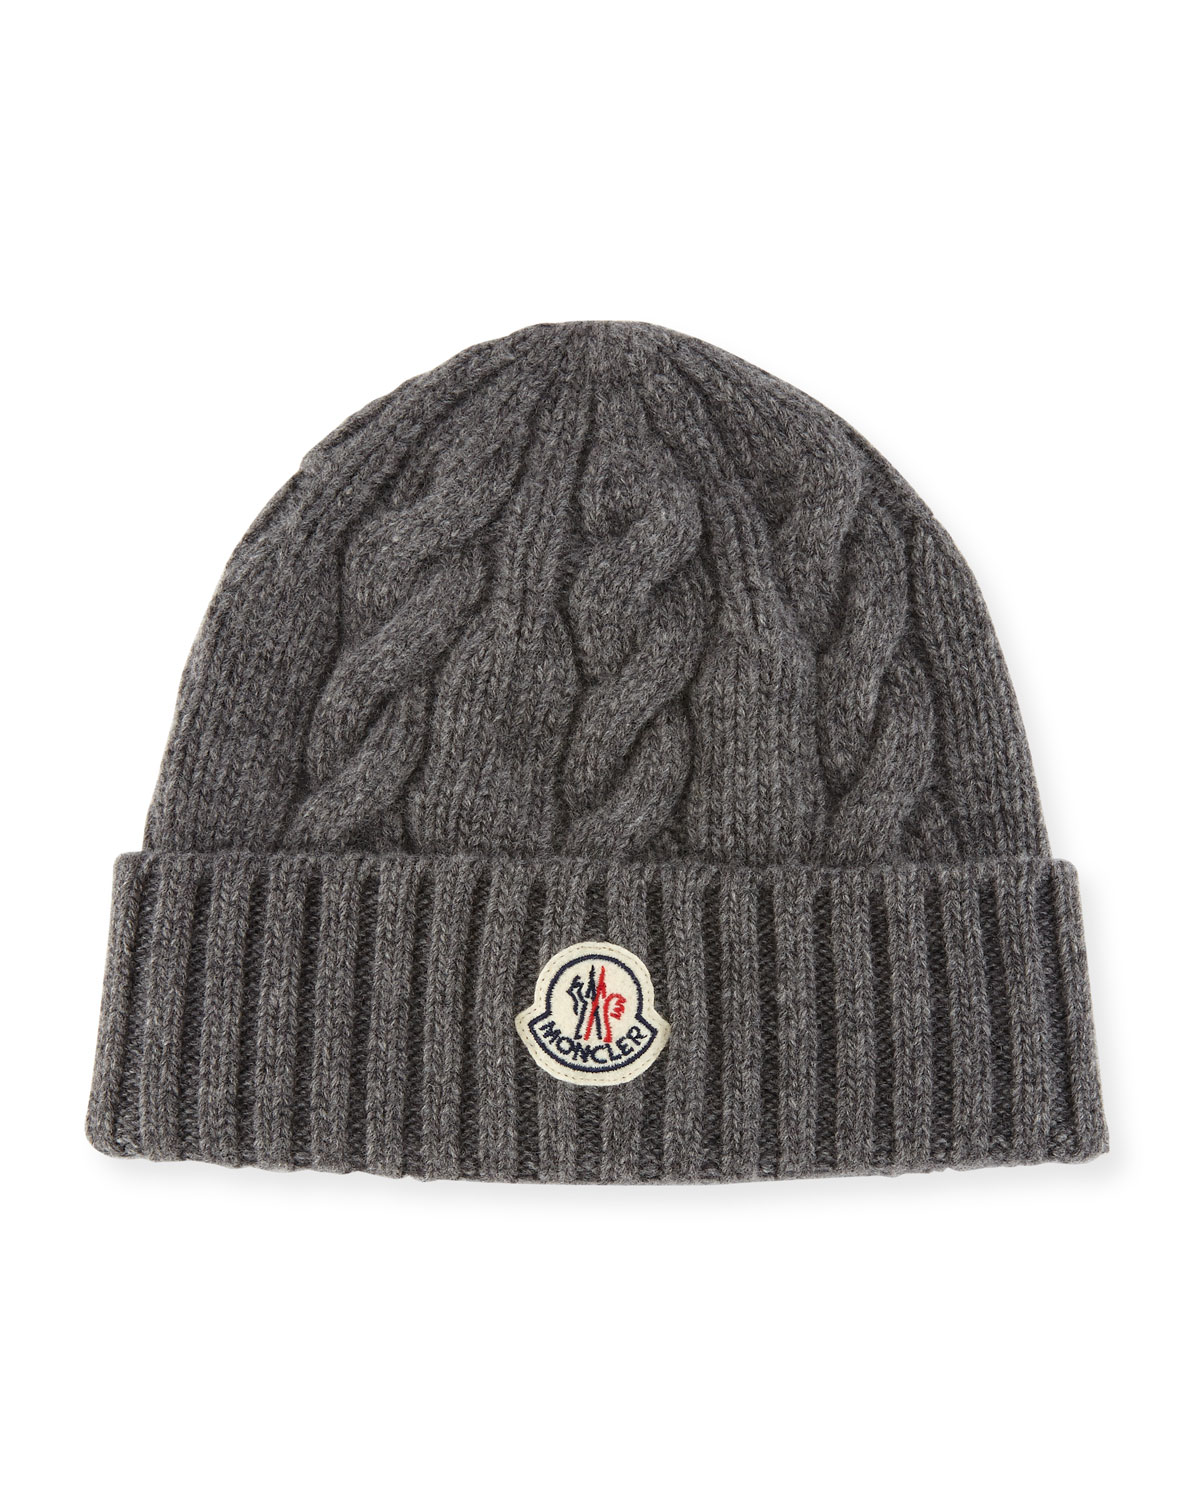 bbf57b402fa Moncler Men s Cable-Knit Wool Beanie Hat